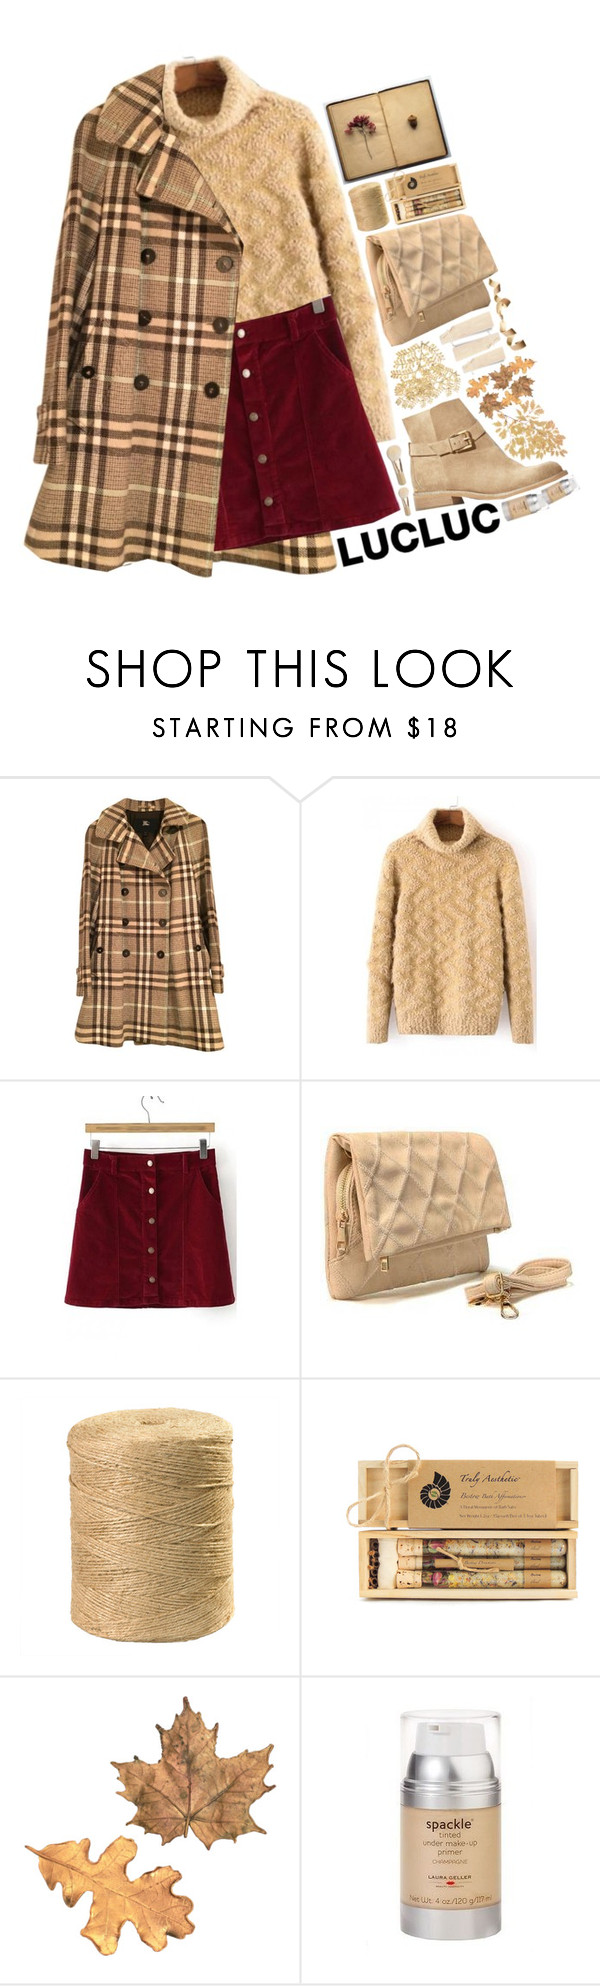 """""""Style With LUCLUC #7"""" by arierrefatir ❤ liked on Polyvore featuring Mode, Burberry, Truly Aesthetic, Laura Geller, Bare Escentuals und lucluc"""